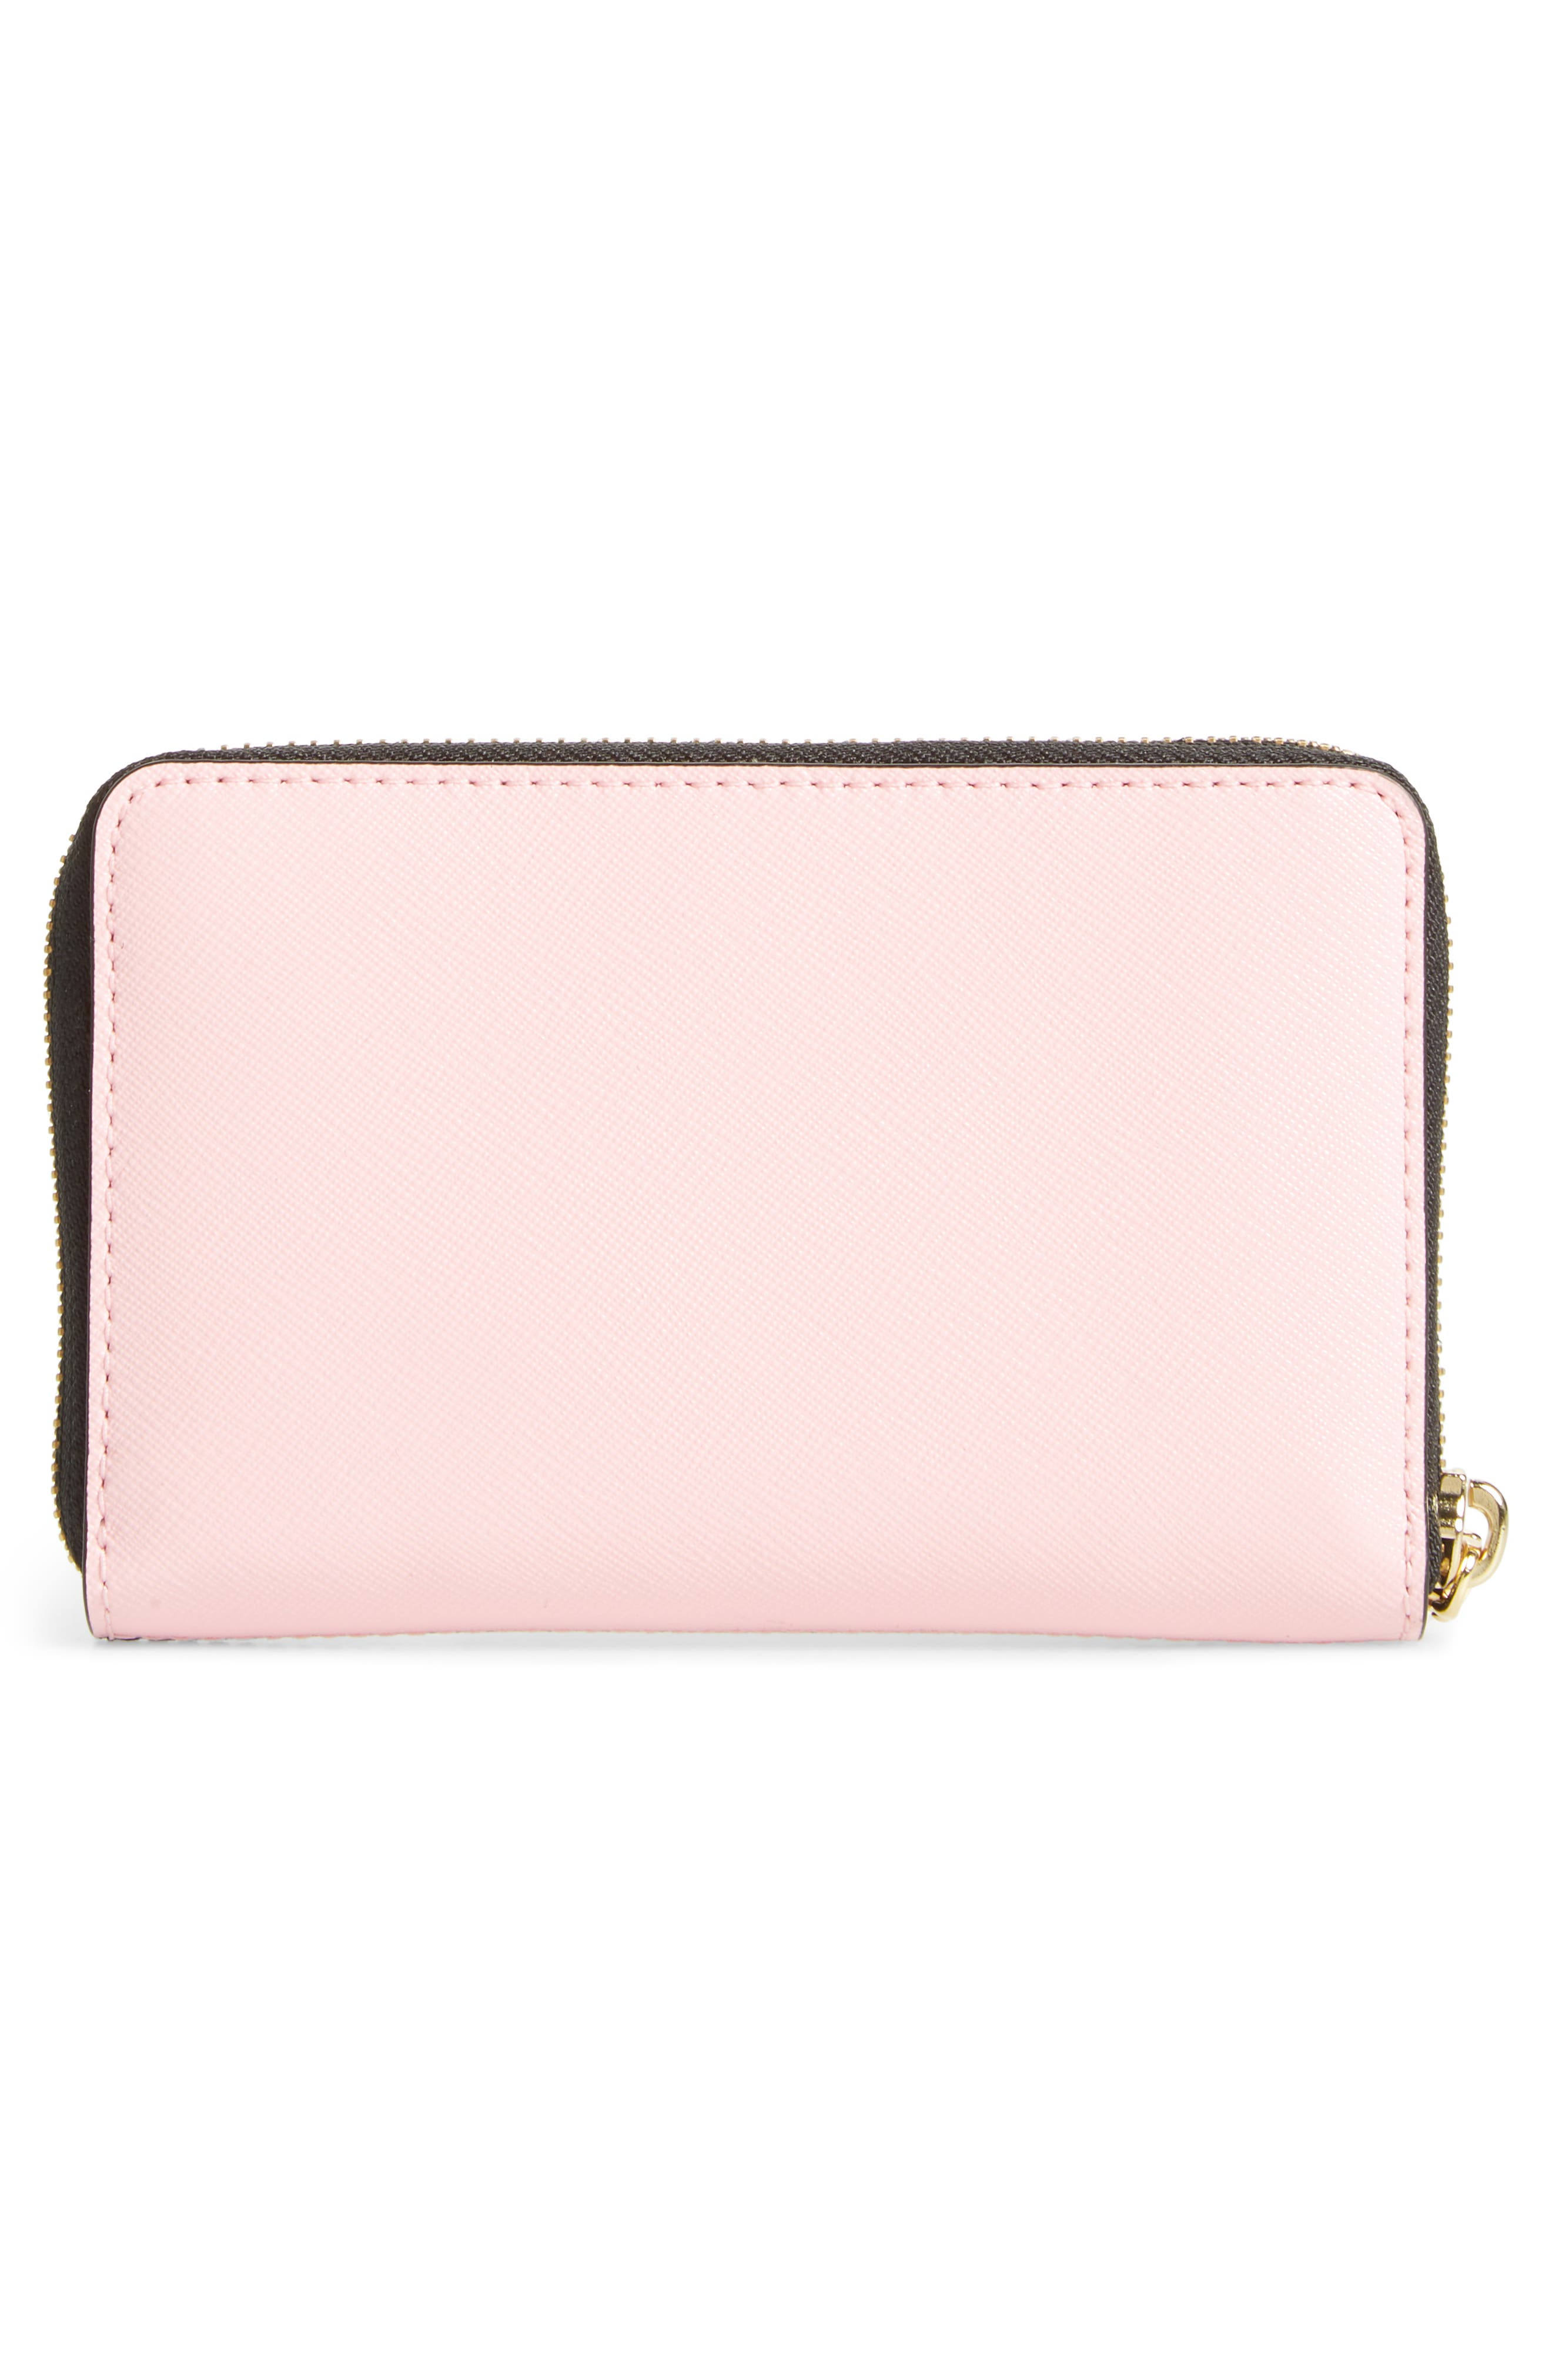 Small Snapshot Leather Zip-Around Wallet,                             Alternate thumbnail 3, color,                             BLACK/ BABY PINK